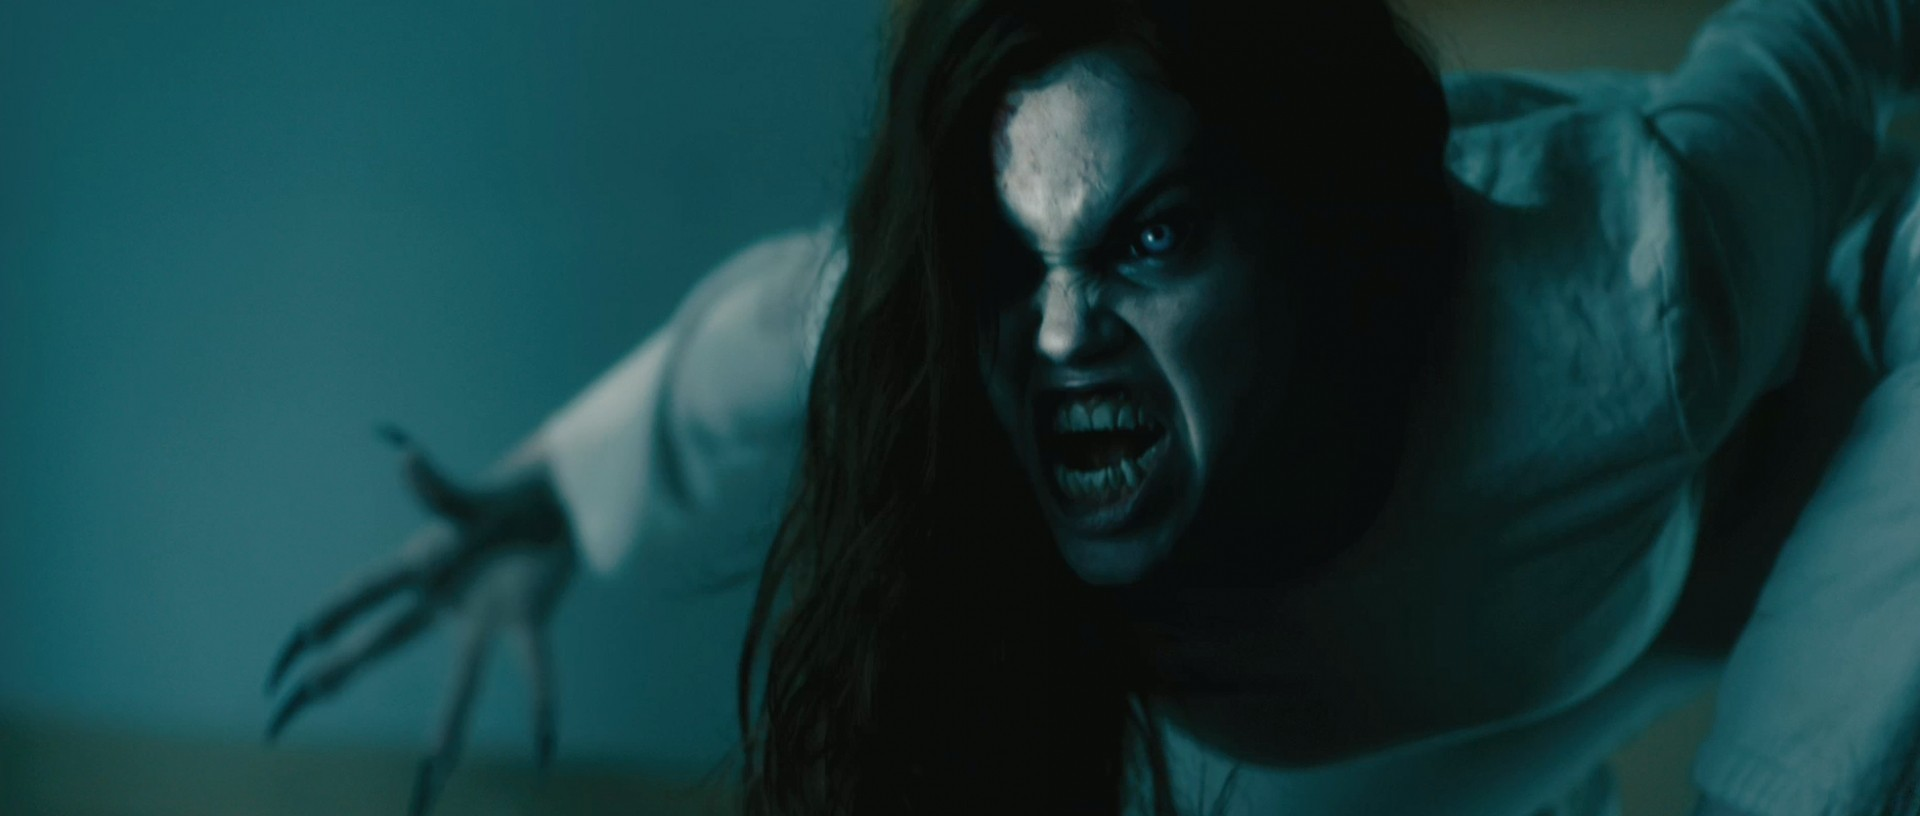 Underworld Awakening | Machinistofpunk's Blog